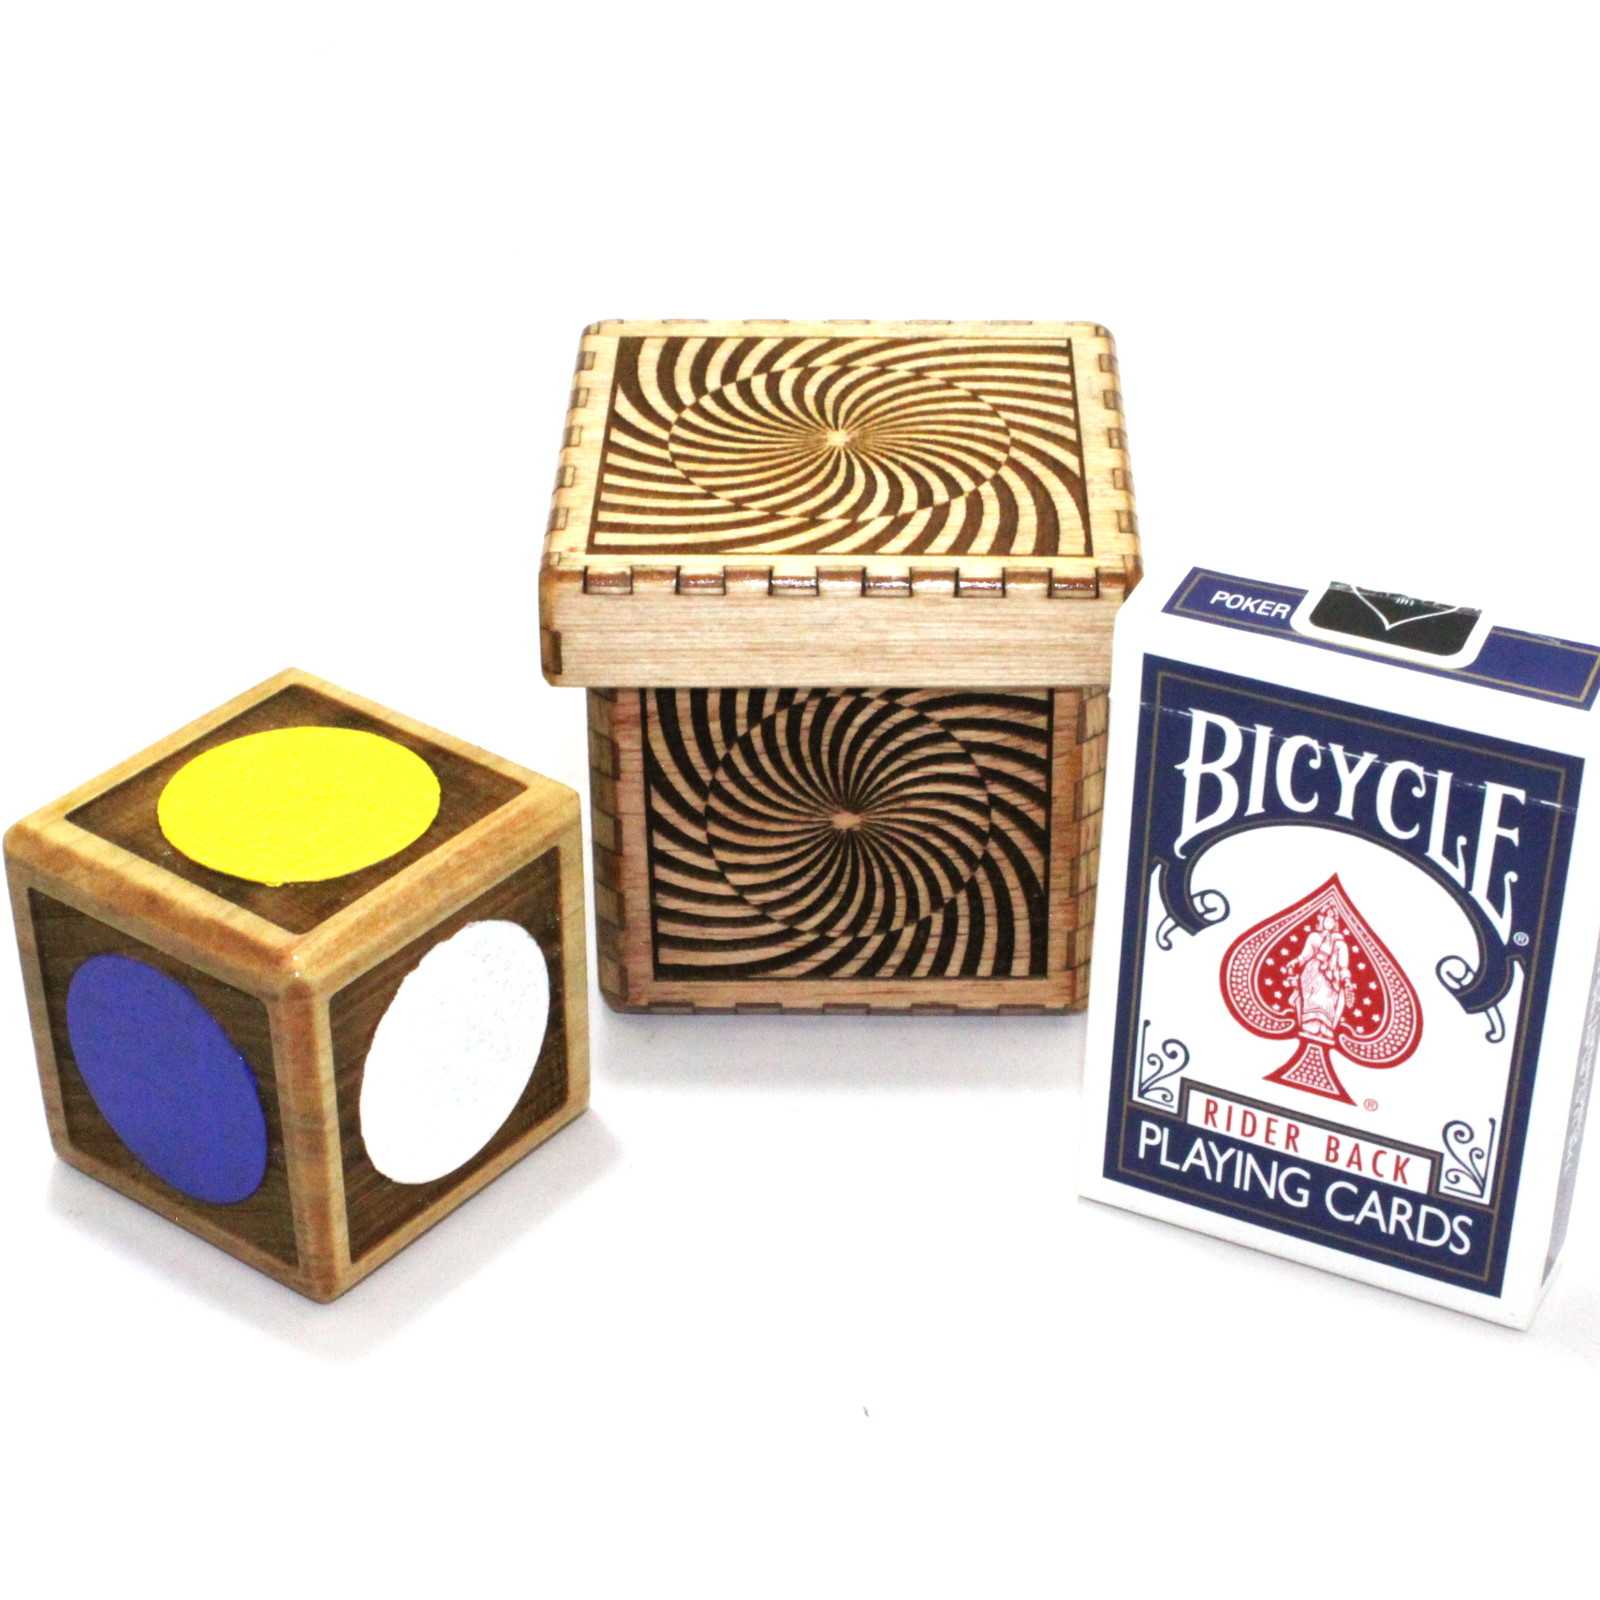 Vision Cube Color Spots / Psycolor Cube by Handcrafted Miracles